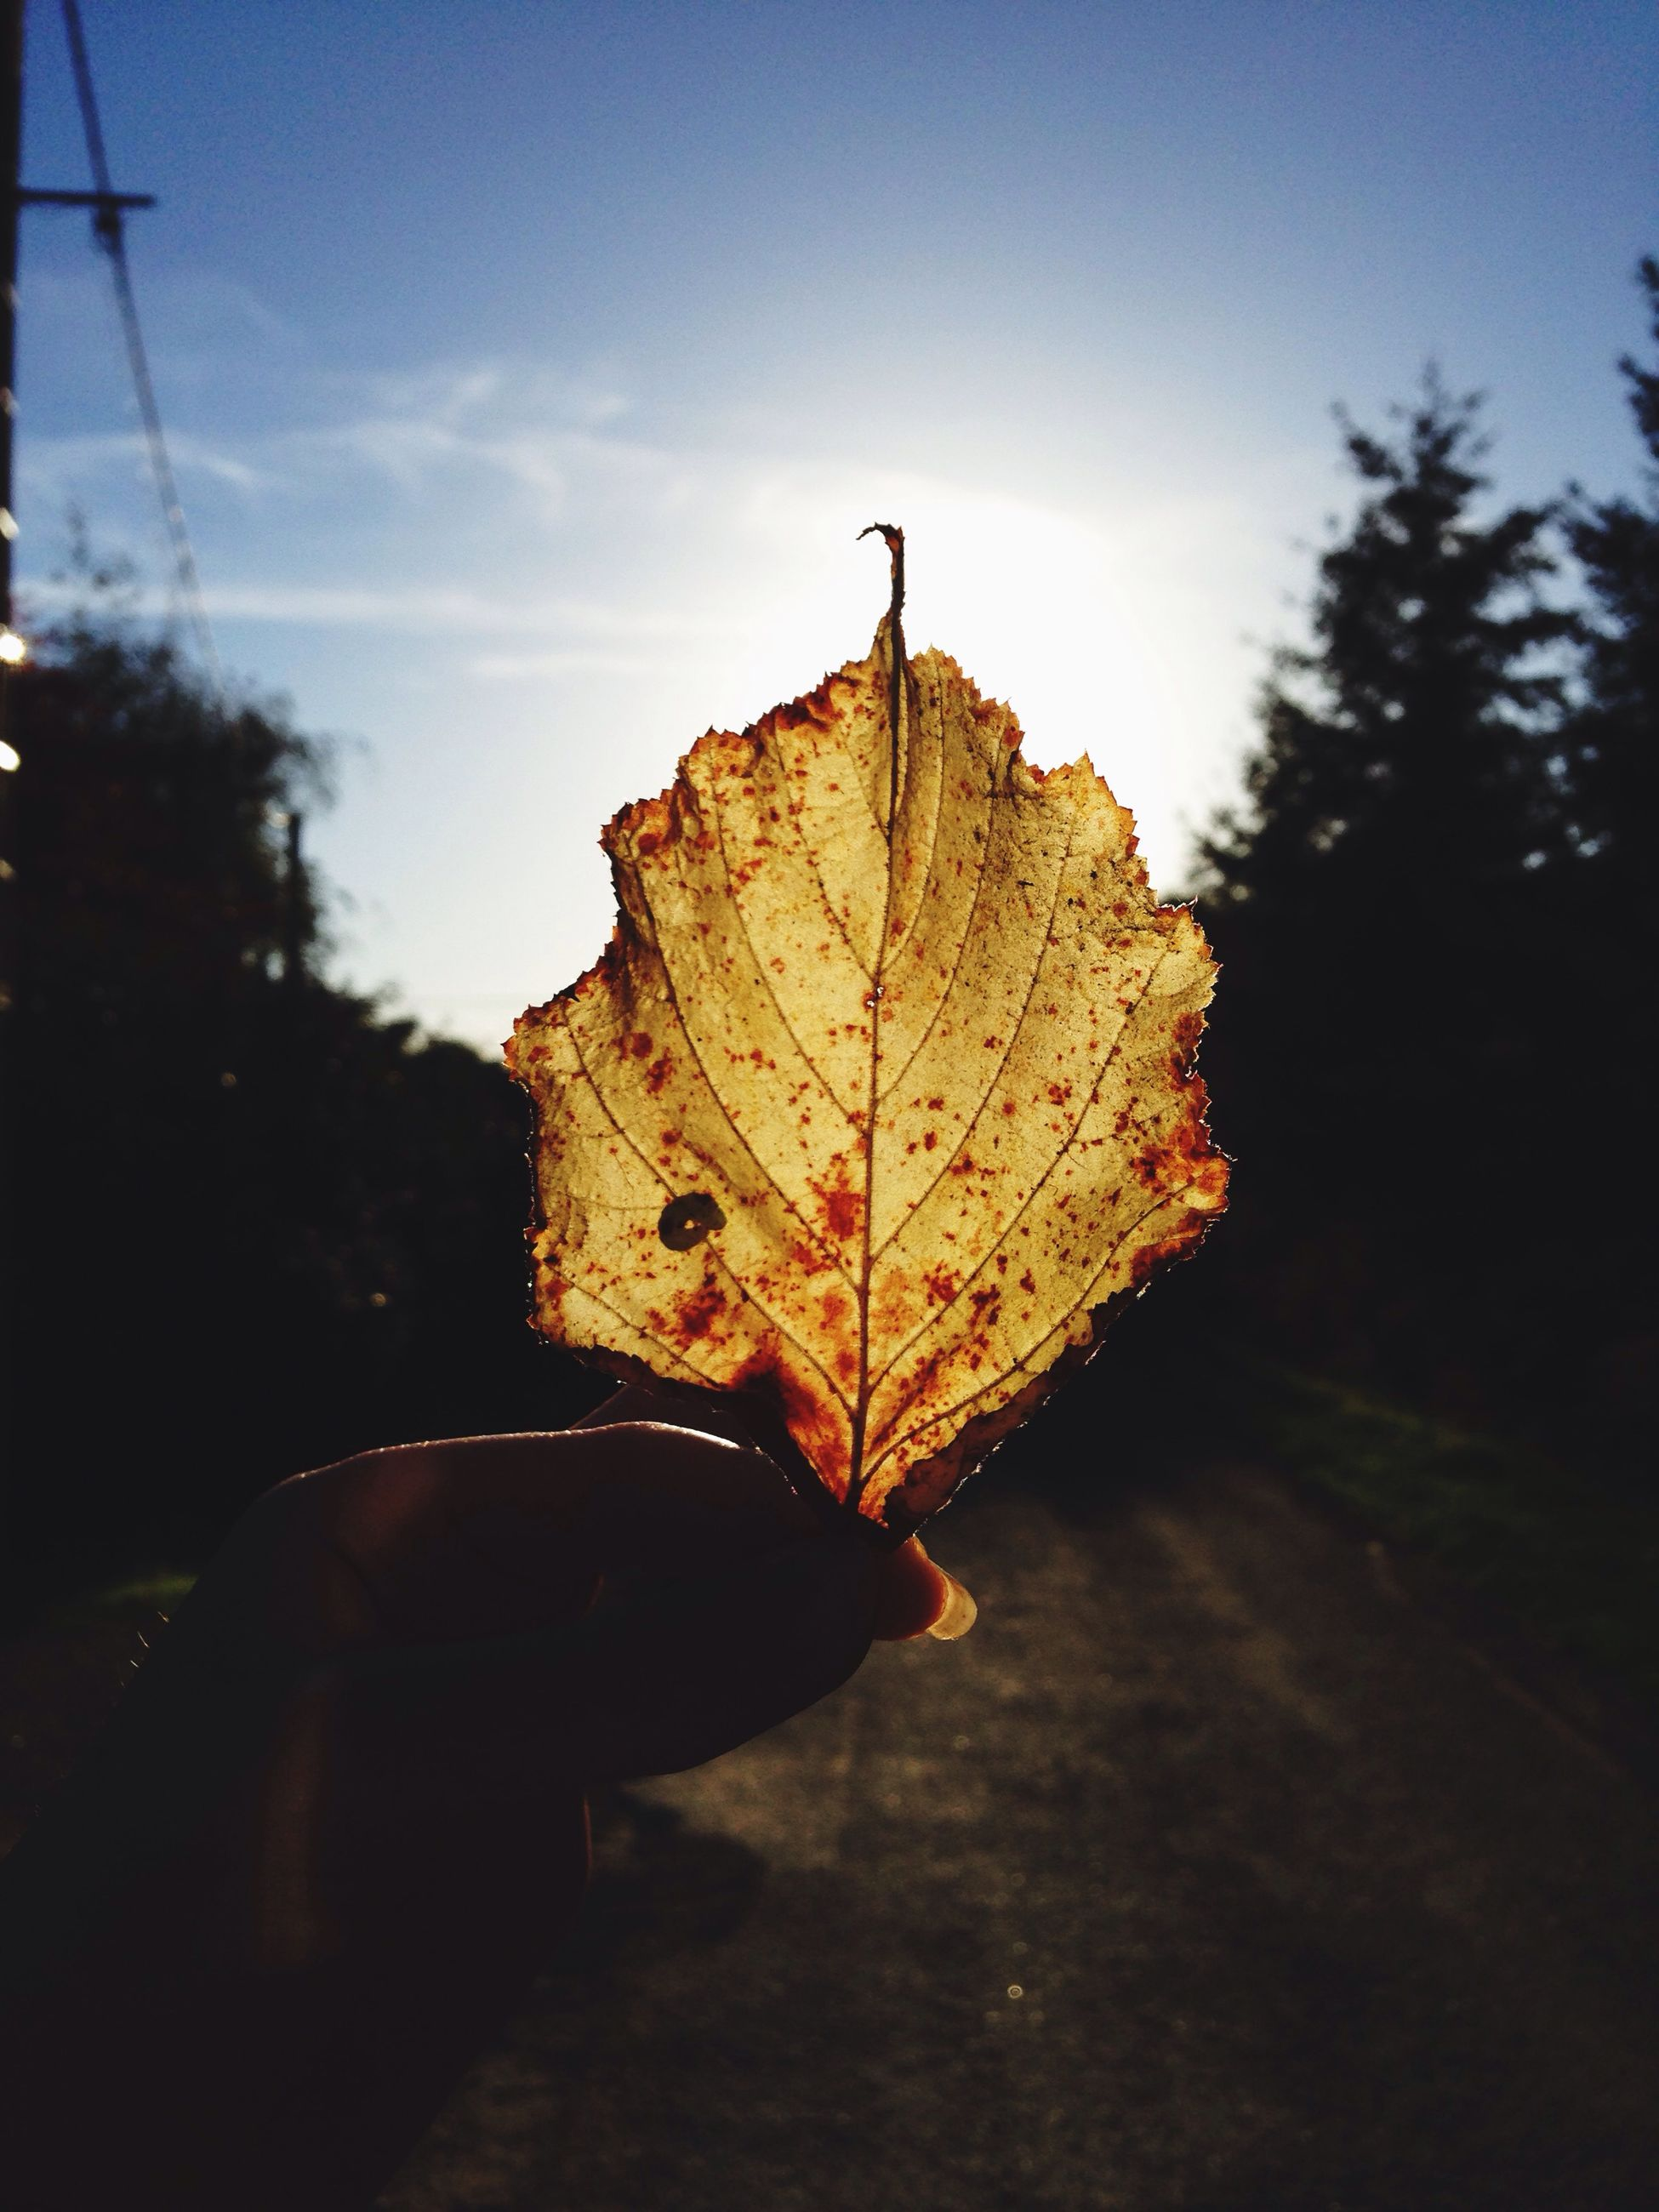 leaf vein, leaf, close-up, dry, autumn, natural pattern, nature, change, season, focus on foreground, one person, part of, sky, fragility, outdoors, maple leaf, beauty in nature, sunlight, leaves, day